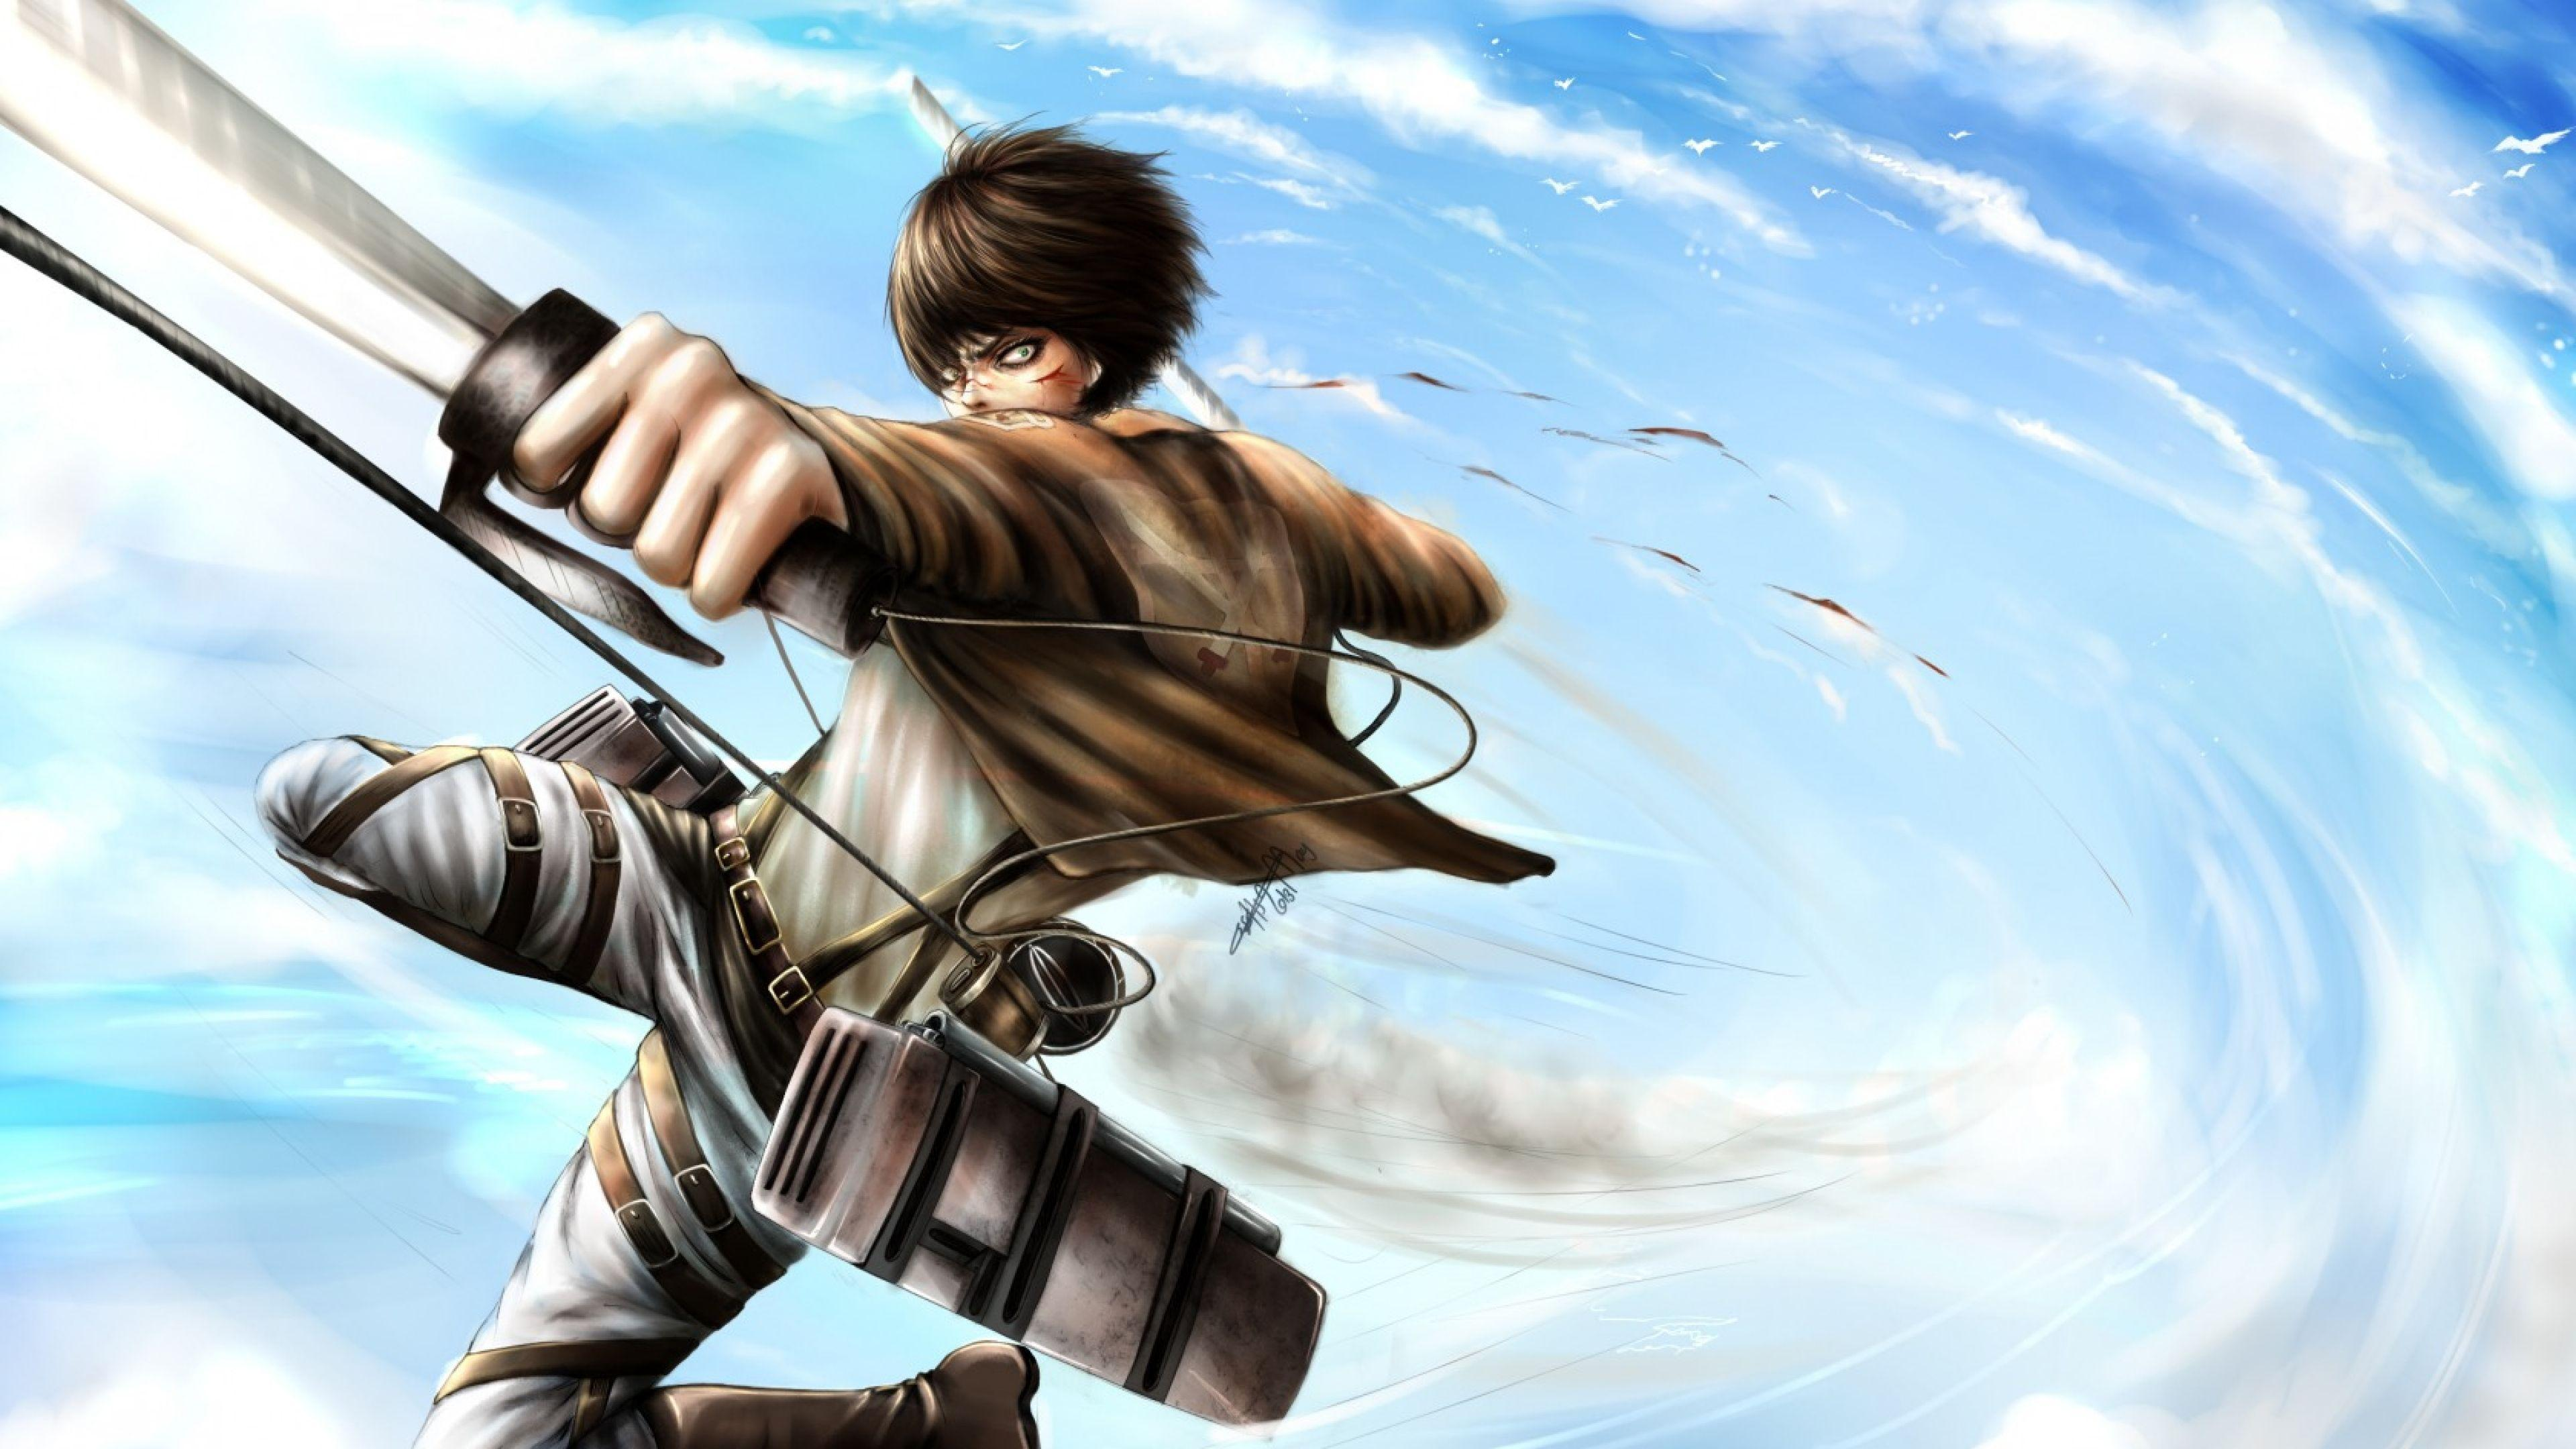 Sizing also makes later remov. Attack On Titan Wallpapers - Wallpaper Cave